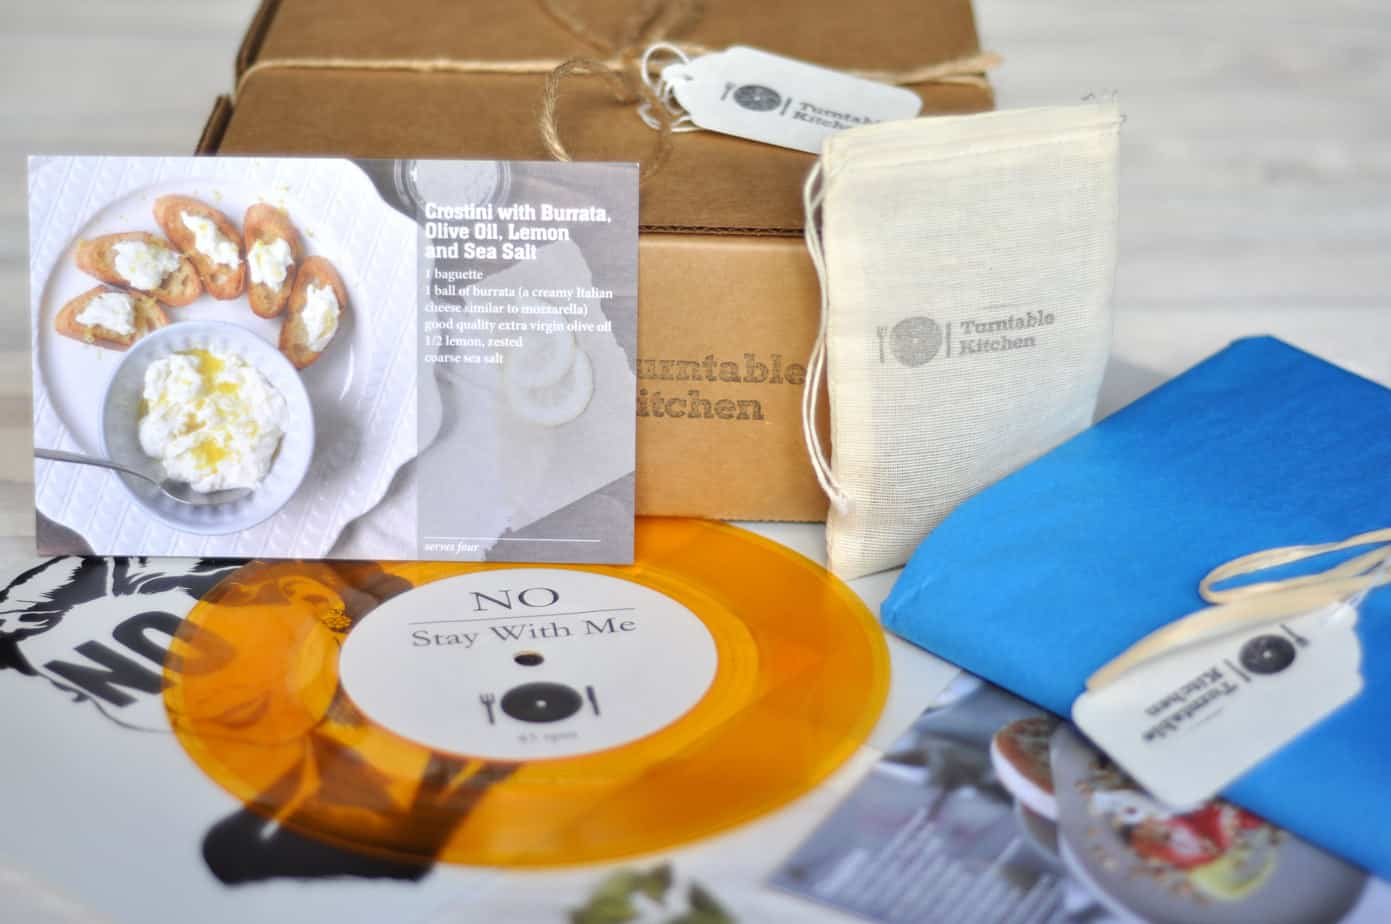 Pairings Box Gift Subscription (6 months) - Turntable Kitchen